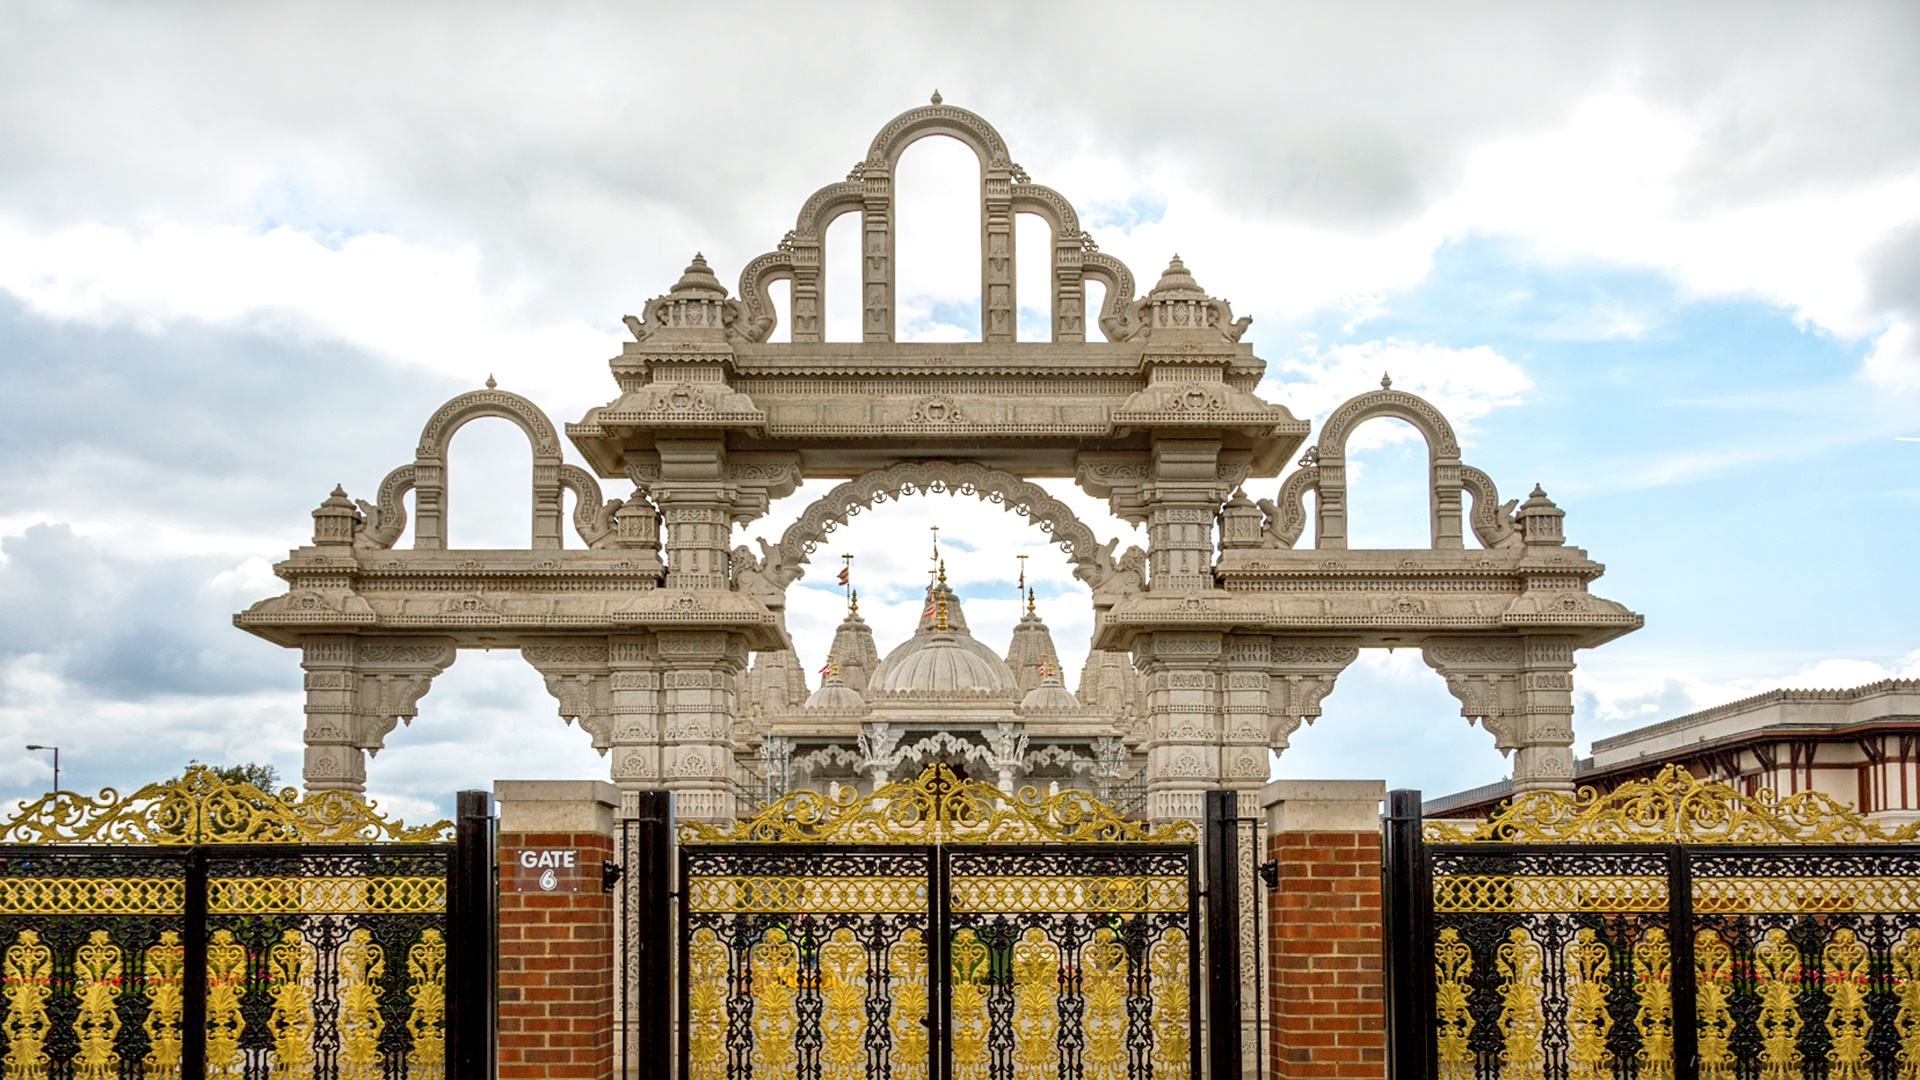 Golden gates in front of Neasdon Temple with a cloudy sky overhead